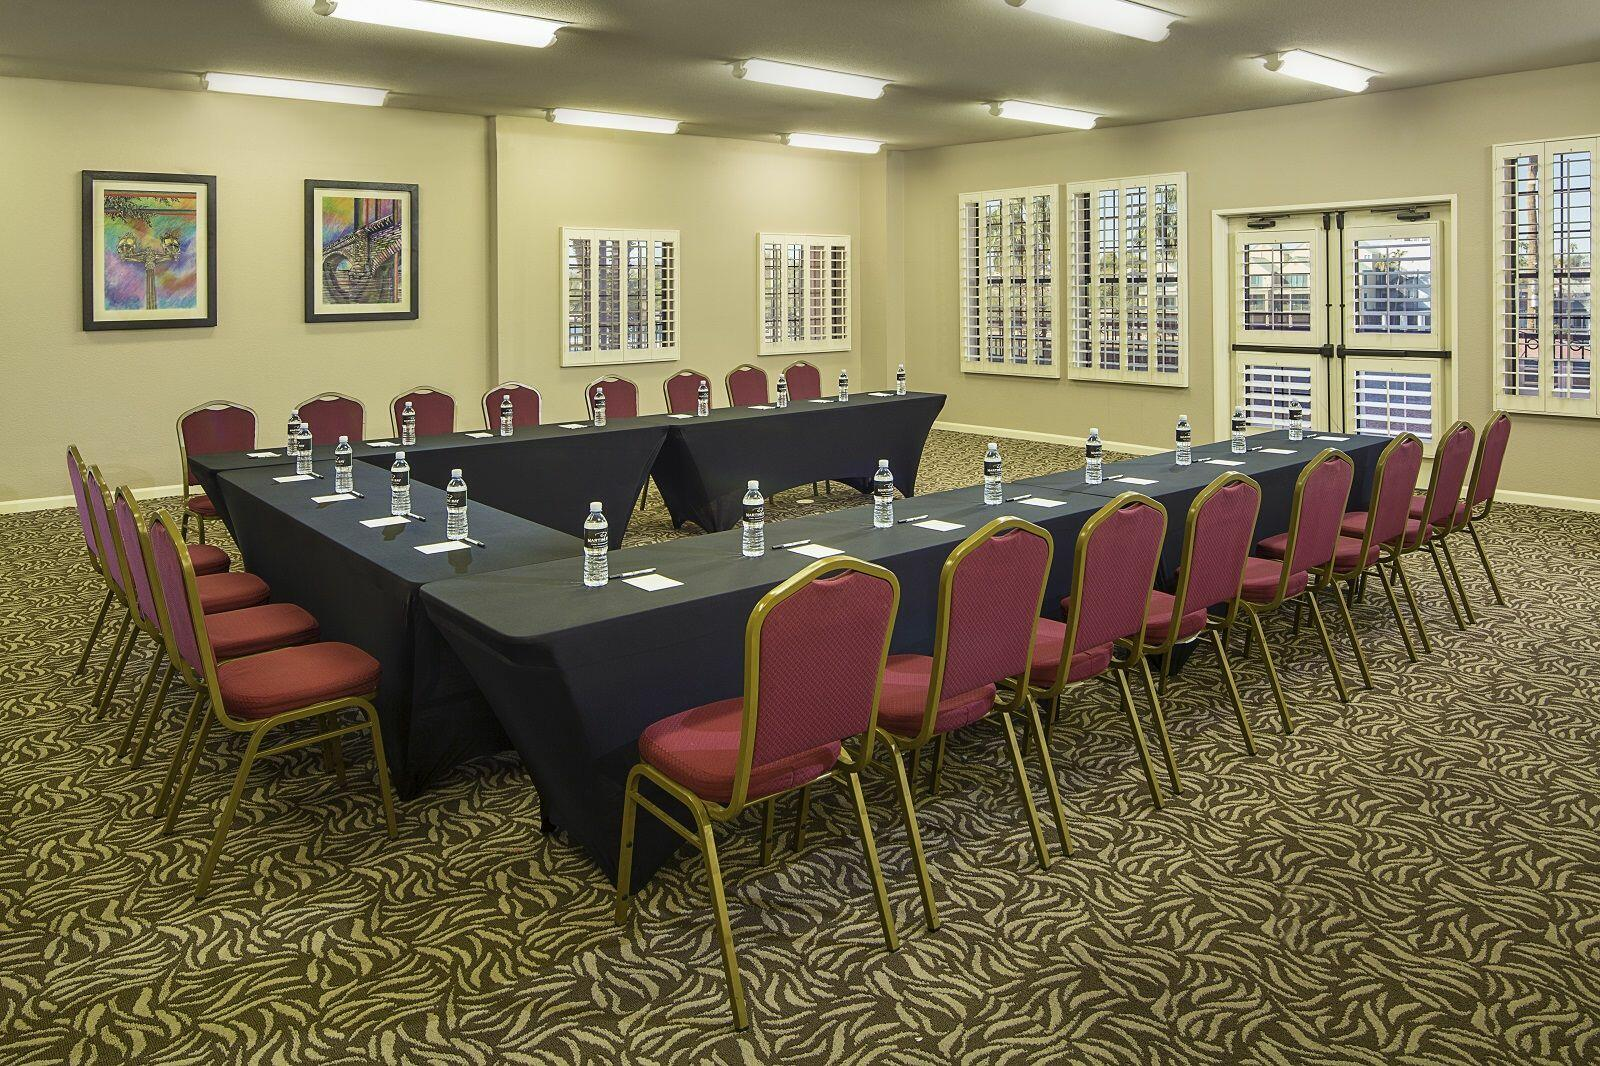 Meeting room with U-shaped conference table.